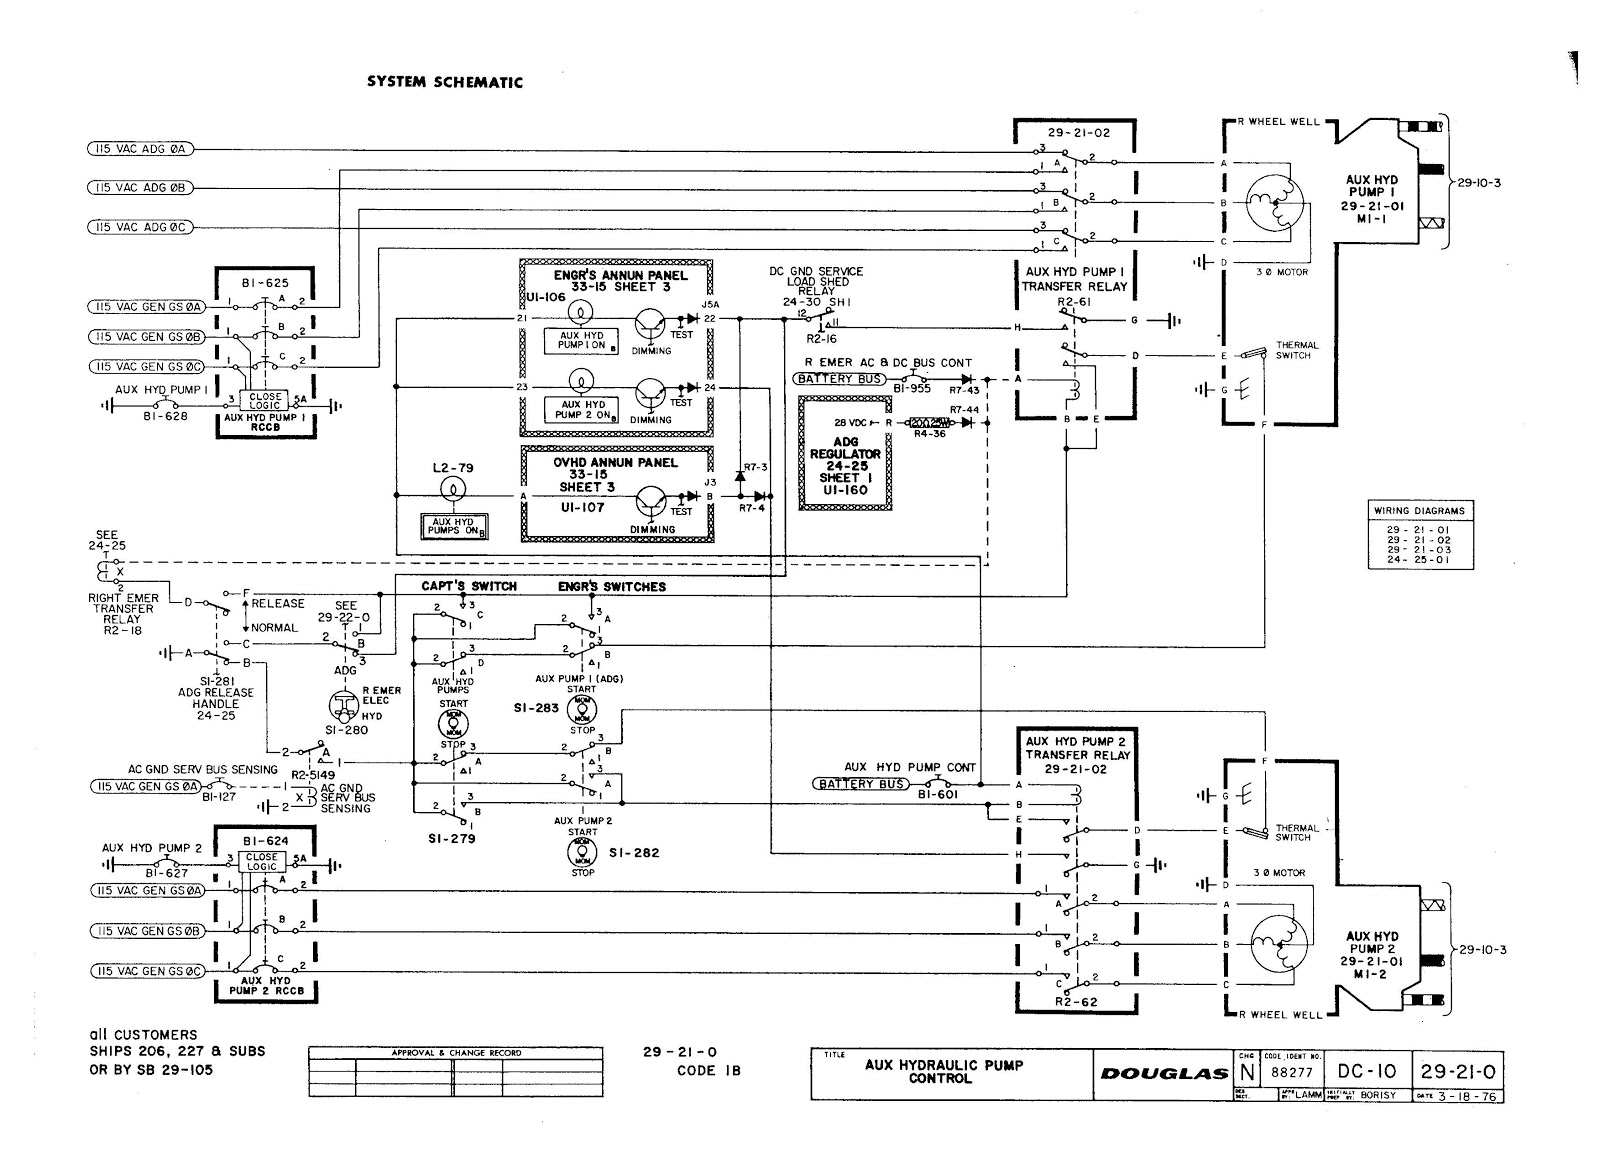 Wiring diagram or manual wiring diagrams schematics part 66 virtual school aircraft wiring and schematic diagrams rh part66school blogspot com at schematic diagram swarovskicordoba Choice Image